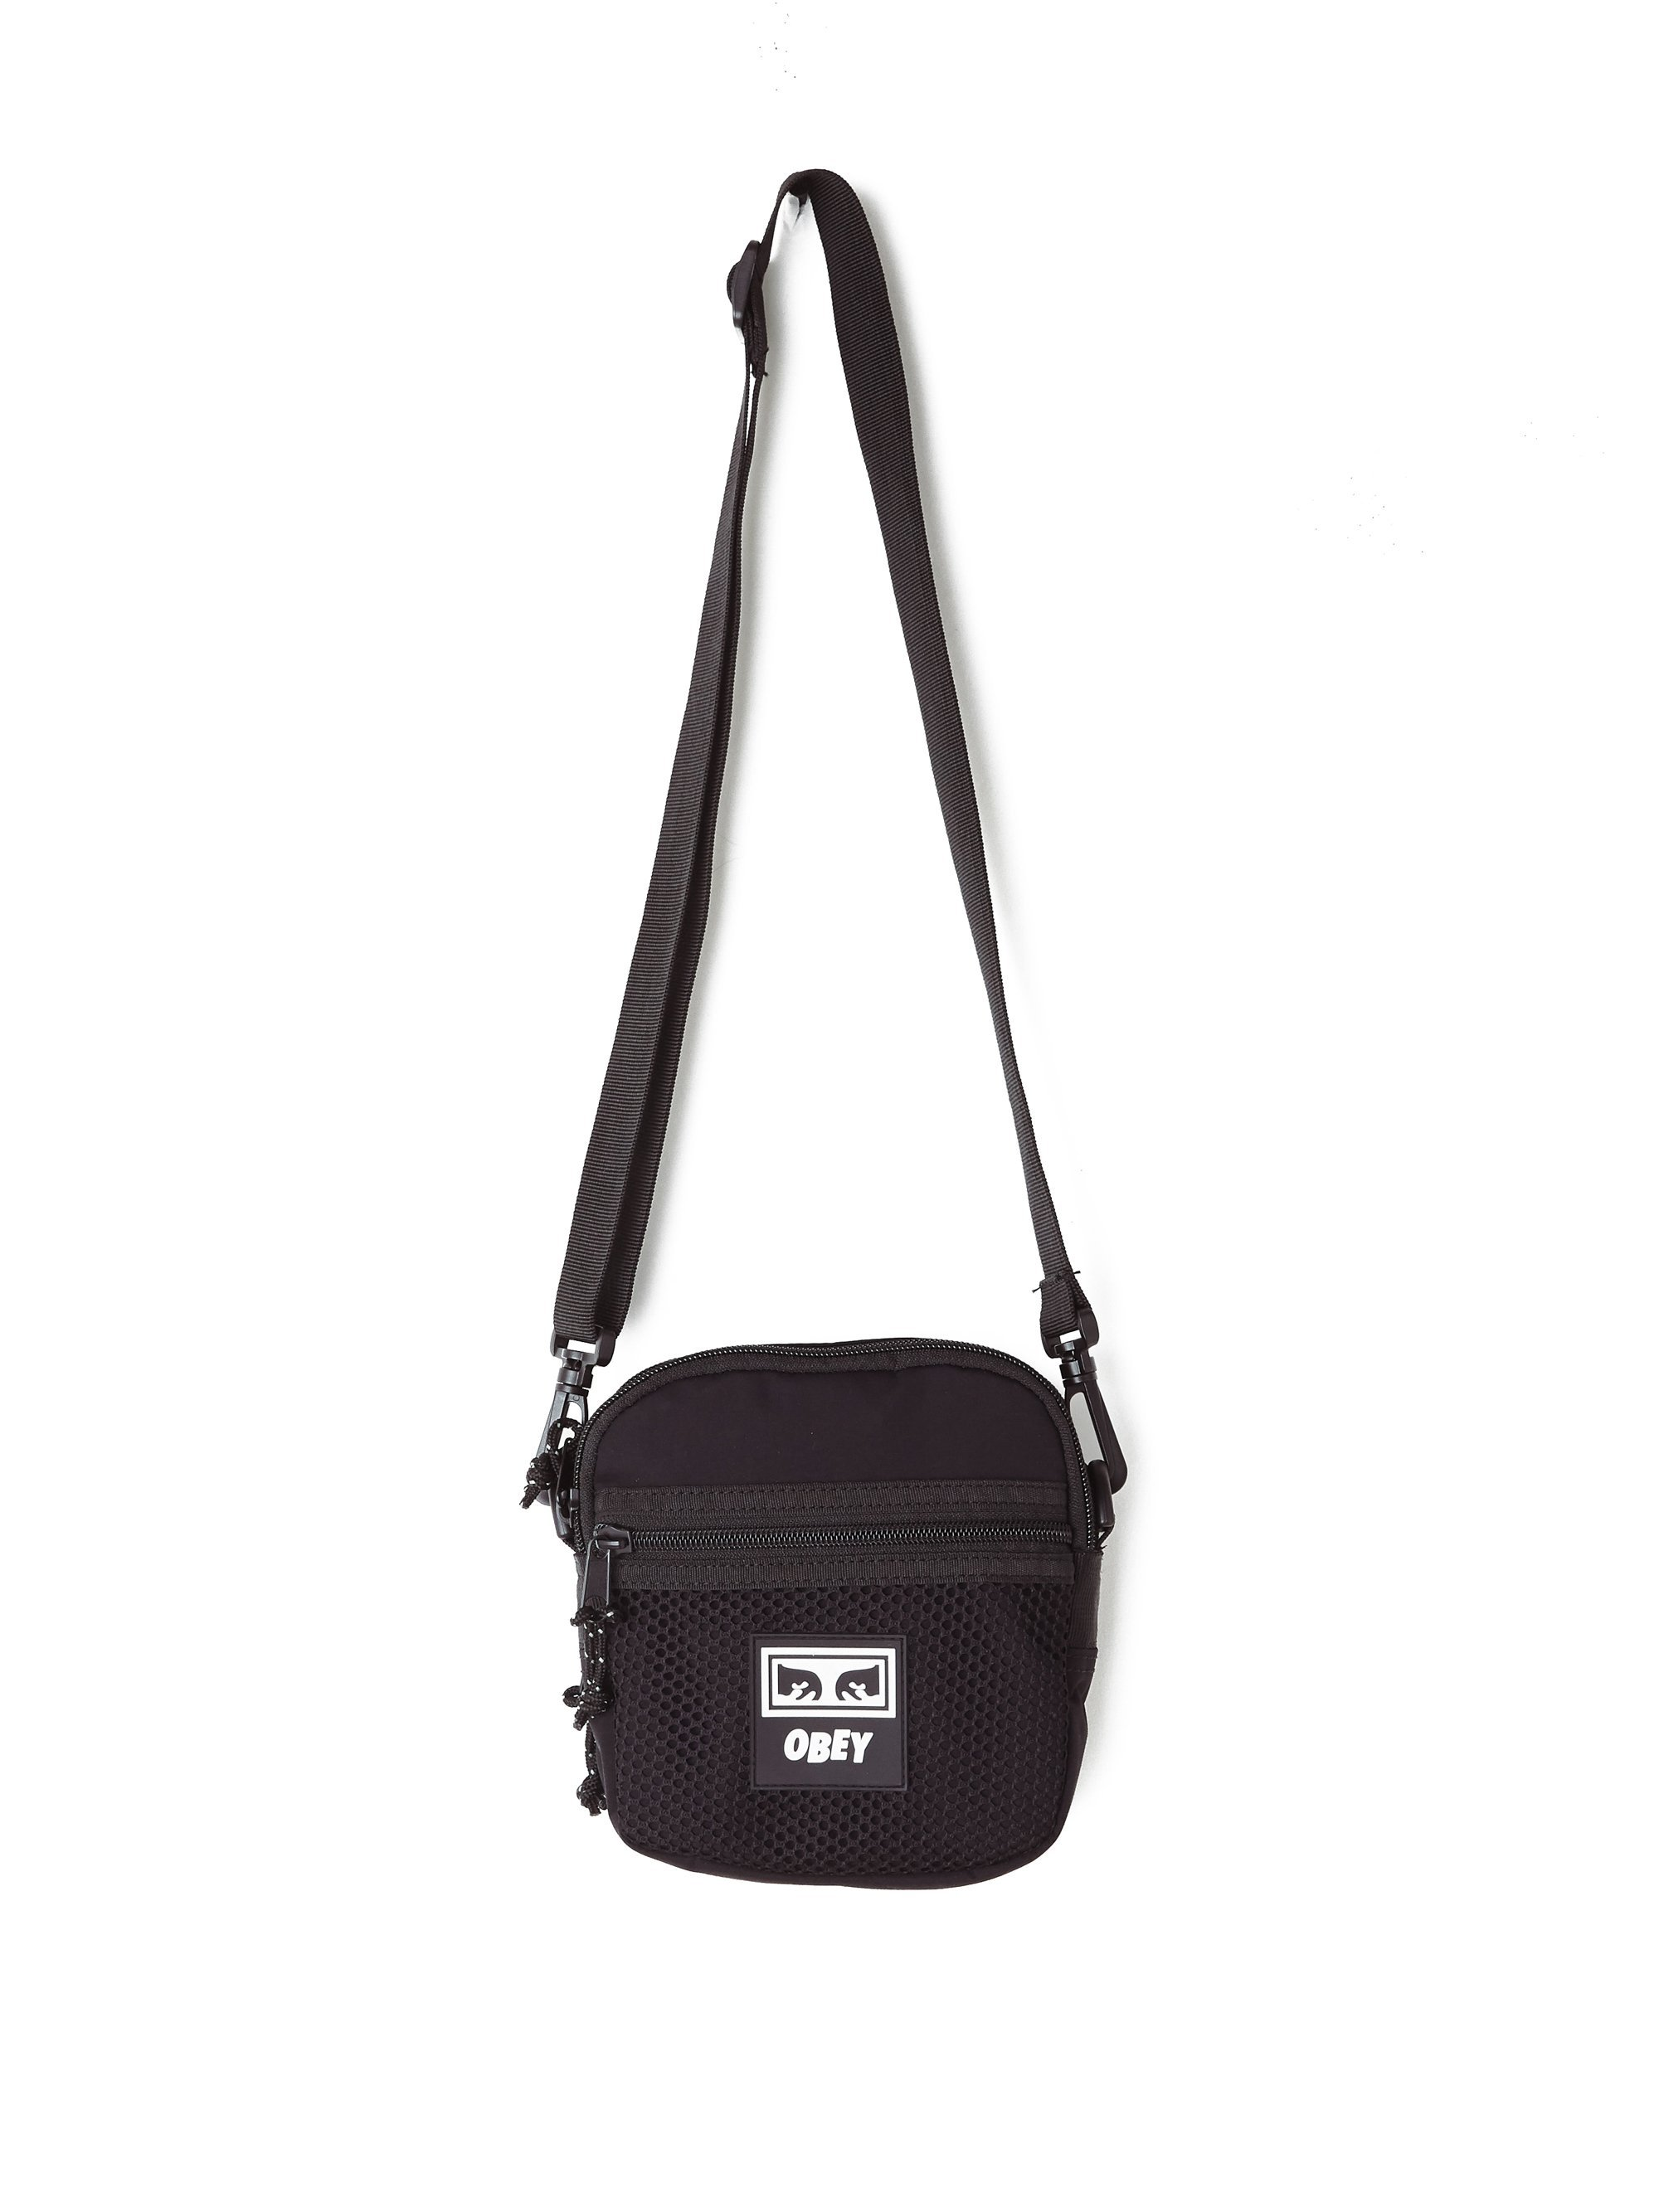 OBEY_Conditions_Traveler_Bag_100010109_BLK_1_2000x.jpg